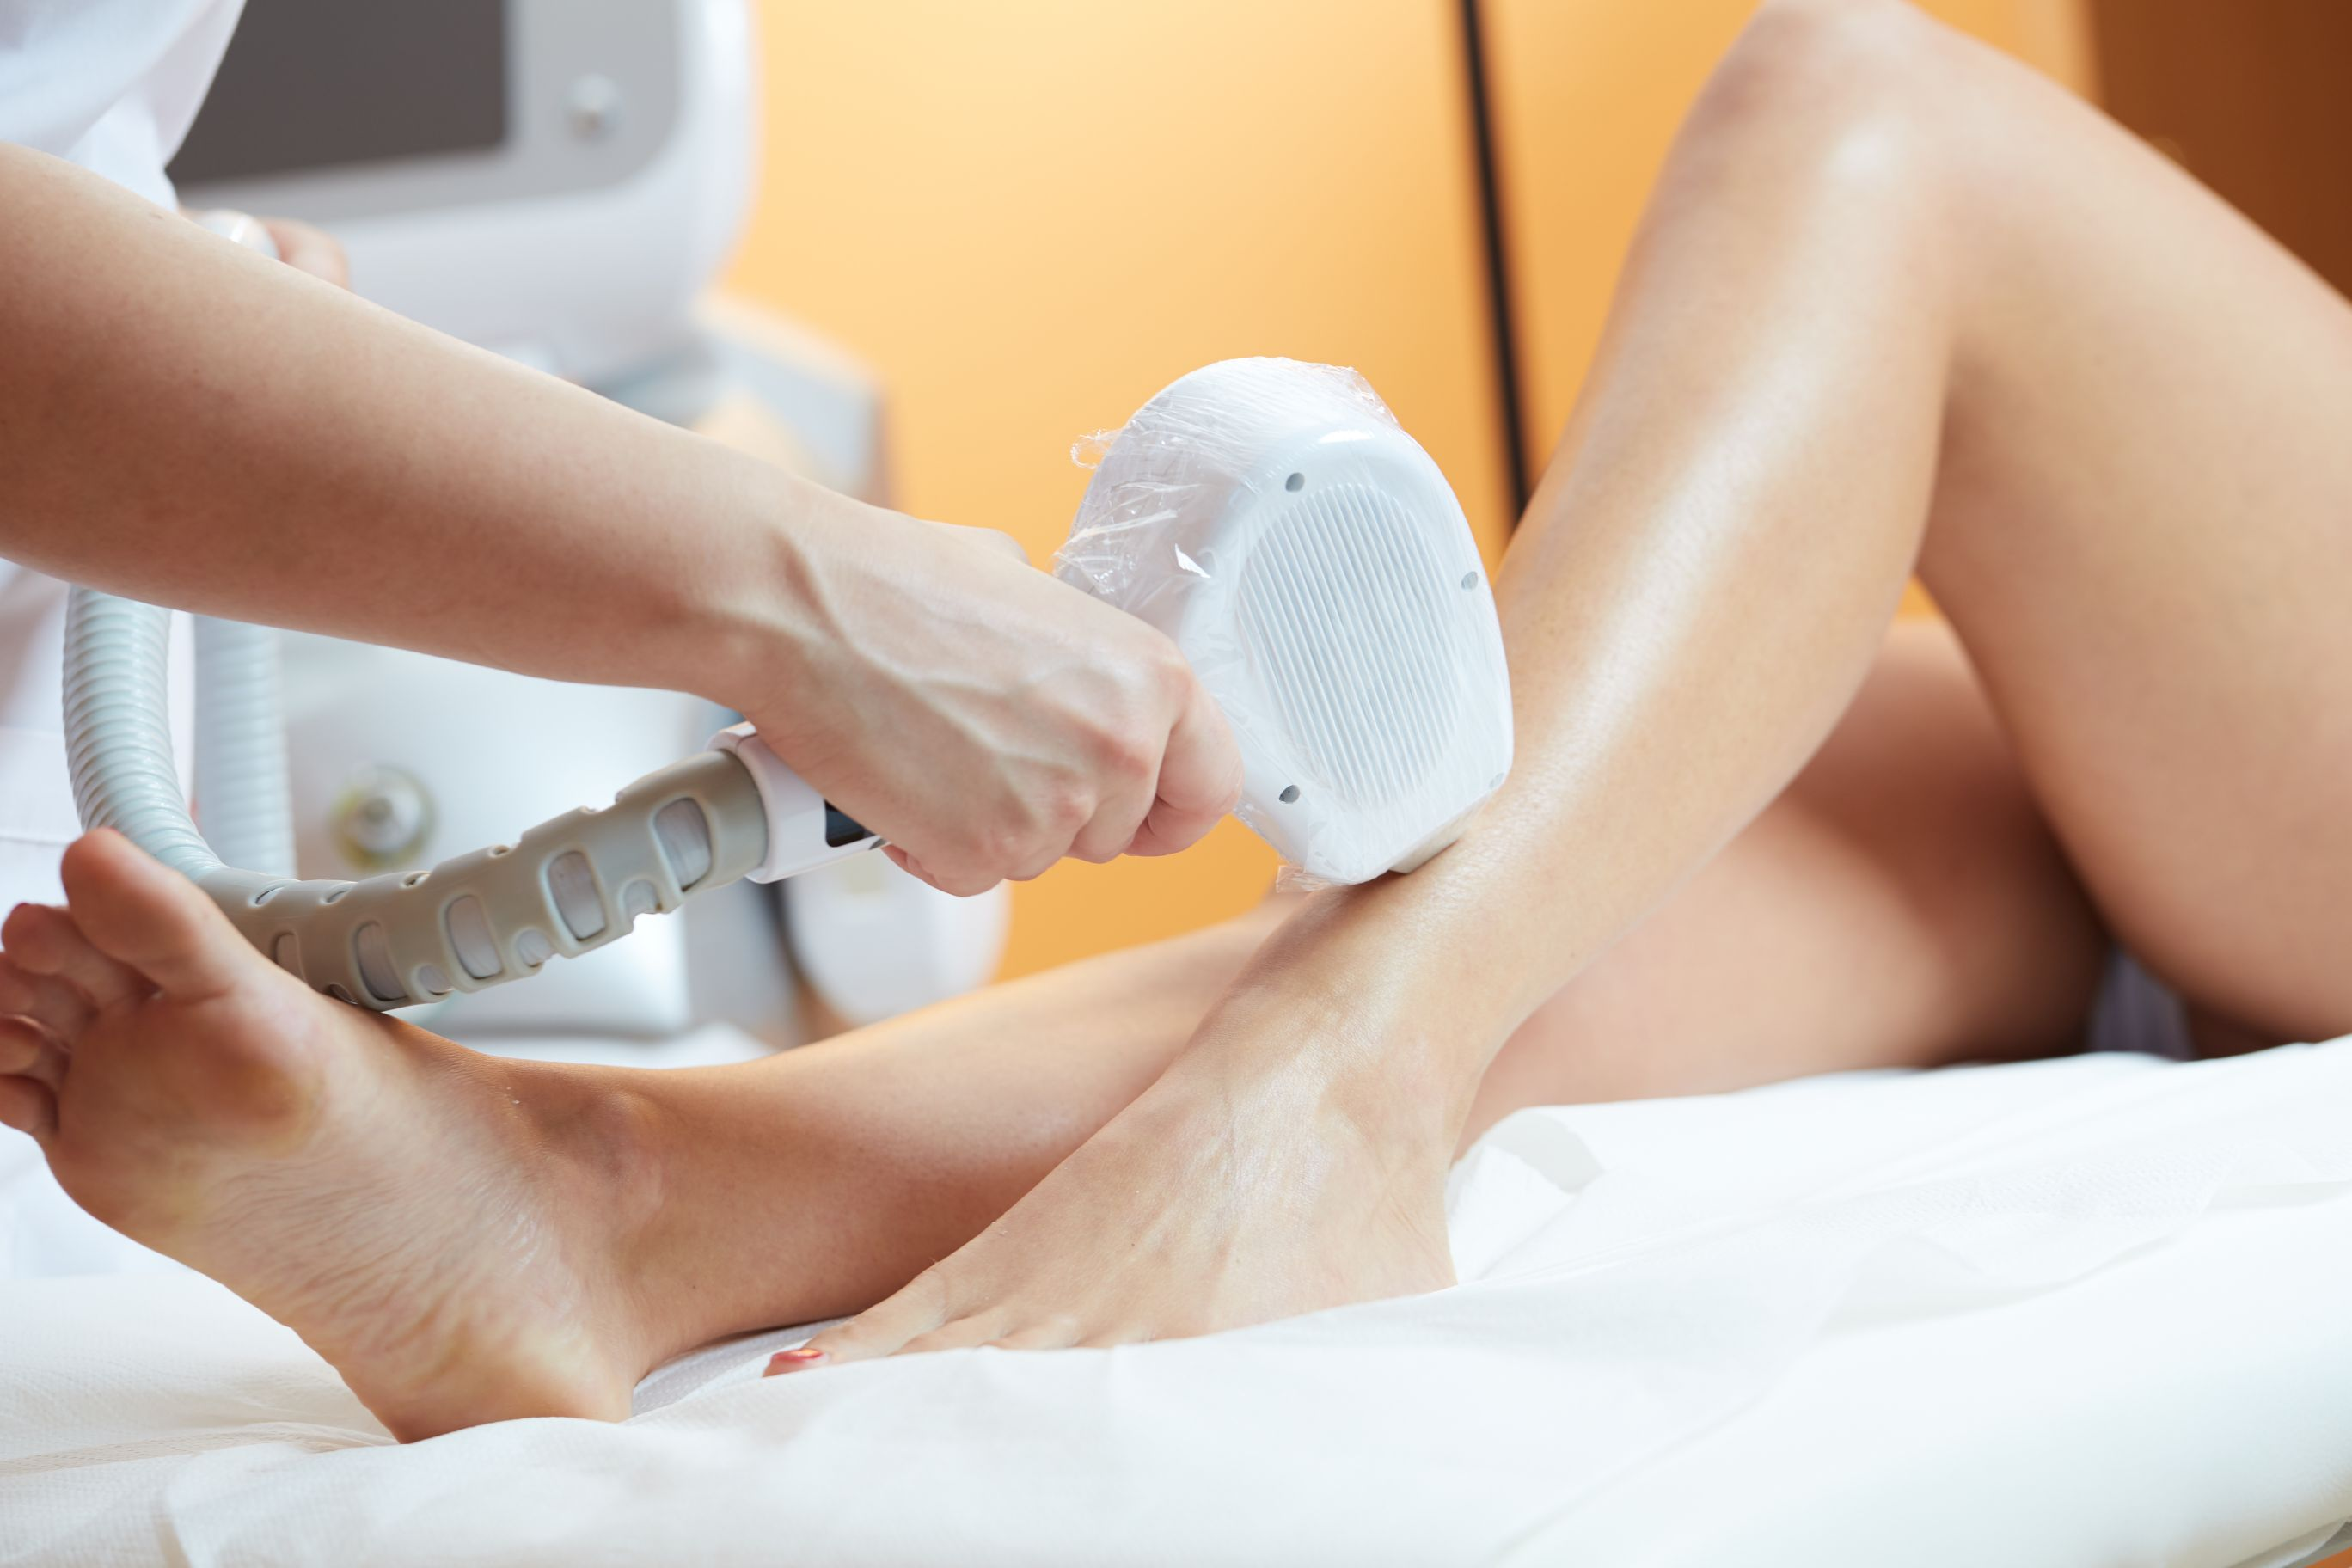 12 Sessions of Brazilian SHR Hair Removal + 1 Session of Brazillian Brightening Treatment / Half Arm or Leg SHR Hair Removal for 1 Person